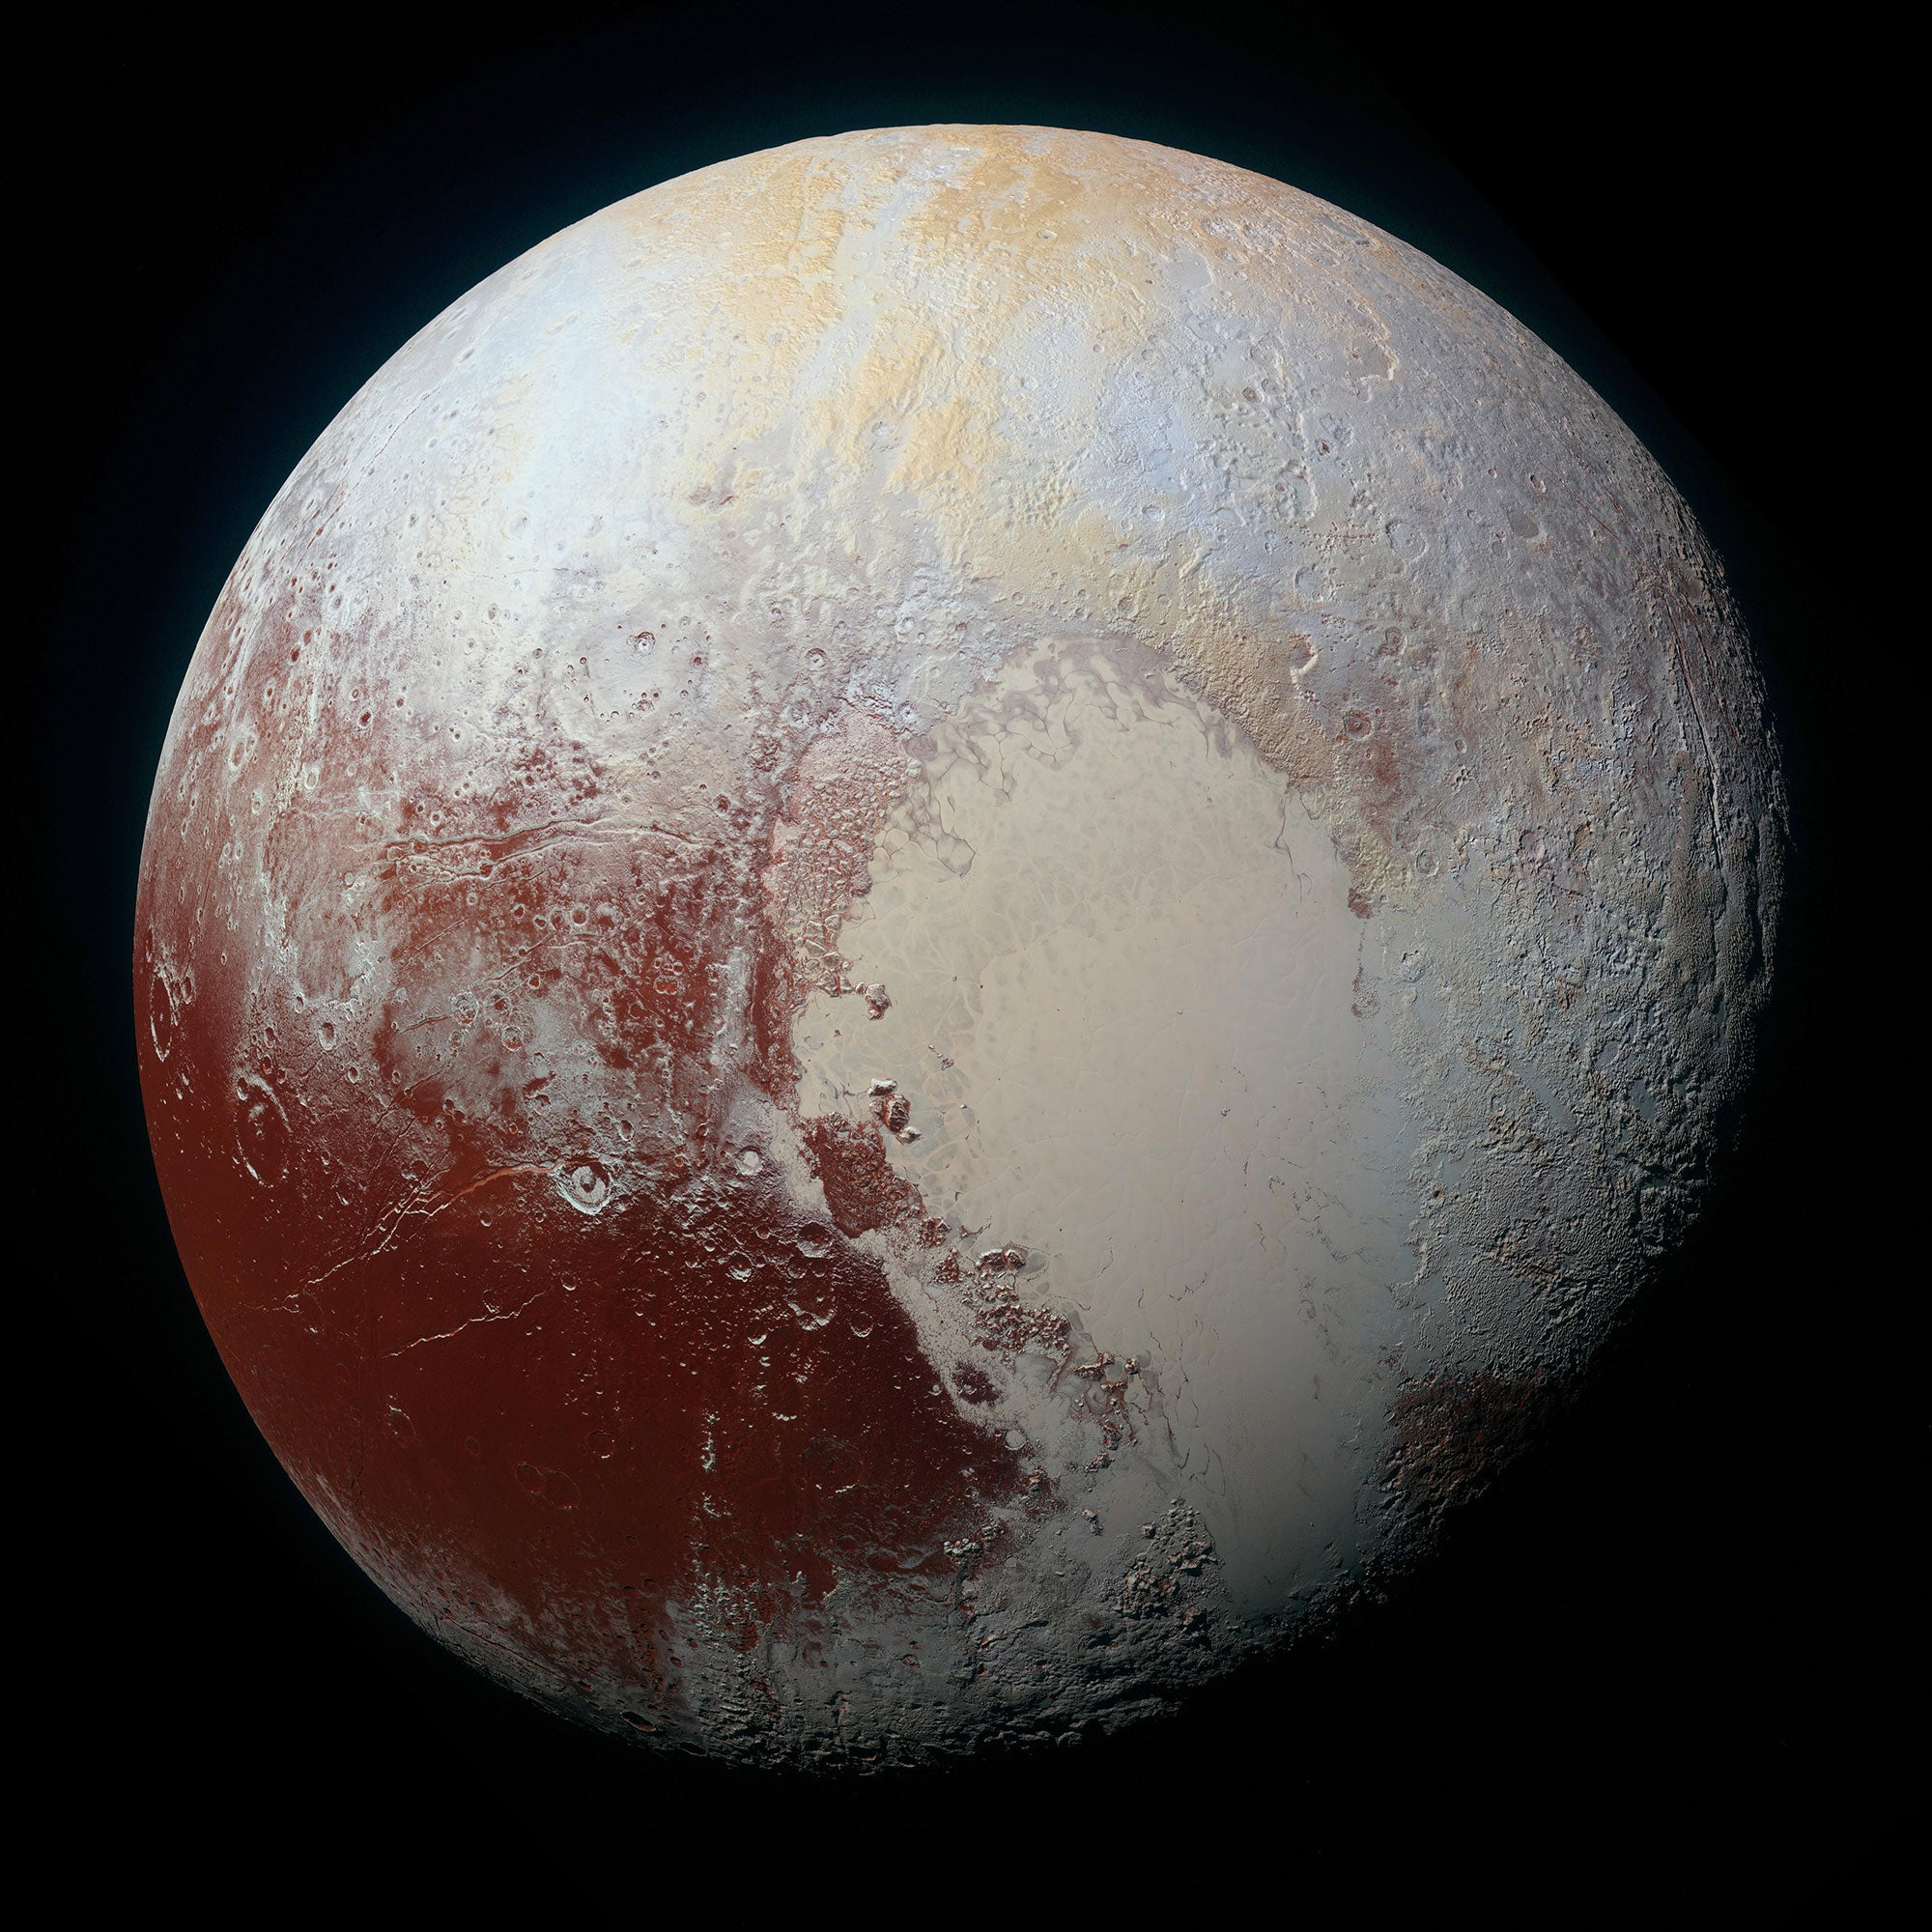 A photograph of the planet Pluto